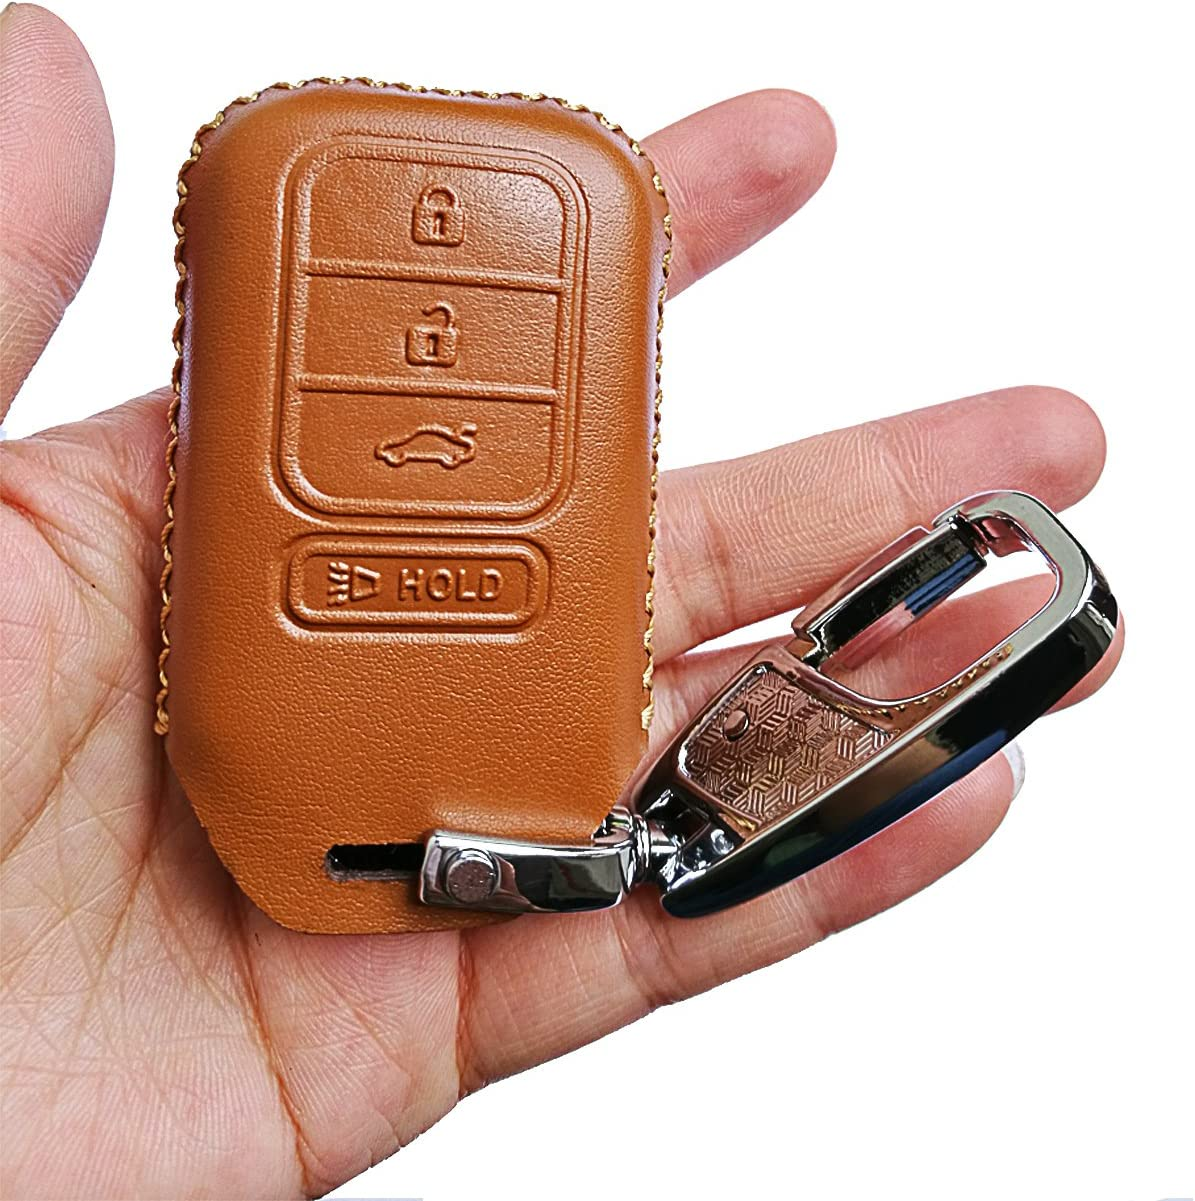 Alegender Genuine Leather Smart Key Remote Fob Case Cover Protector for 2013 2014 2015 2018 Honda Accord EX EX-L Touring Civic 4 Buttons